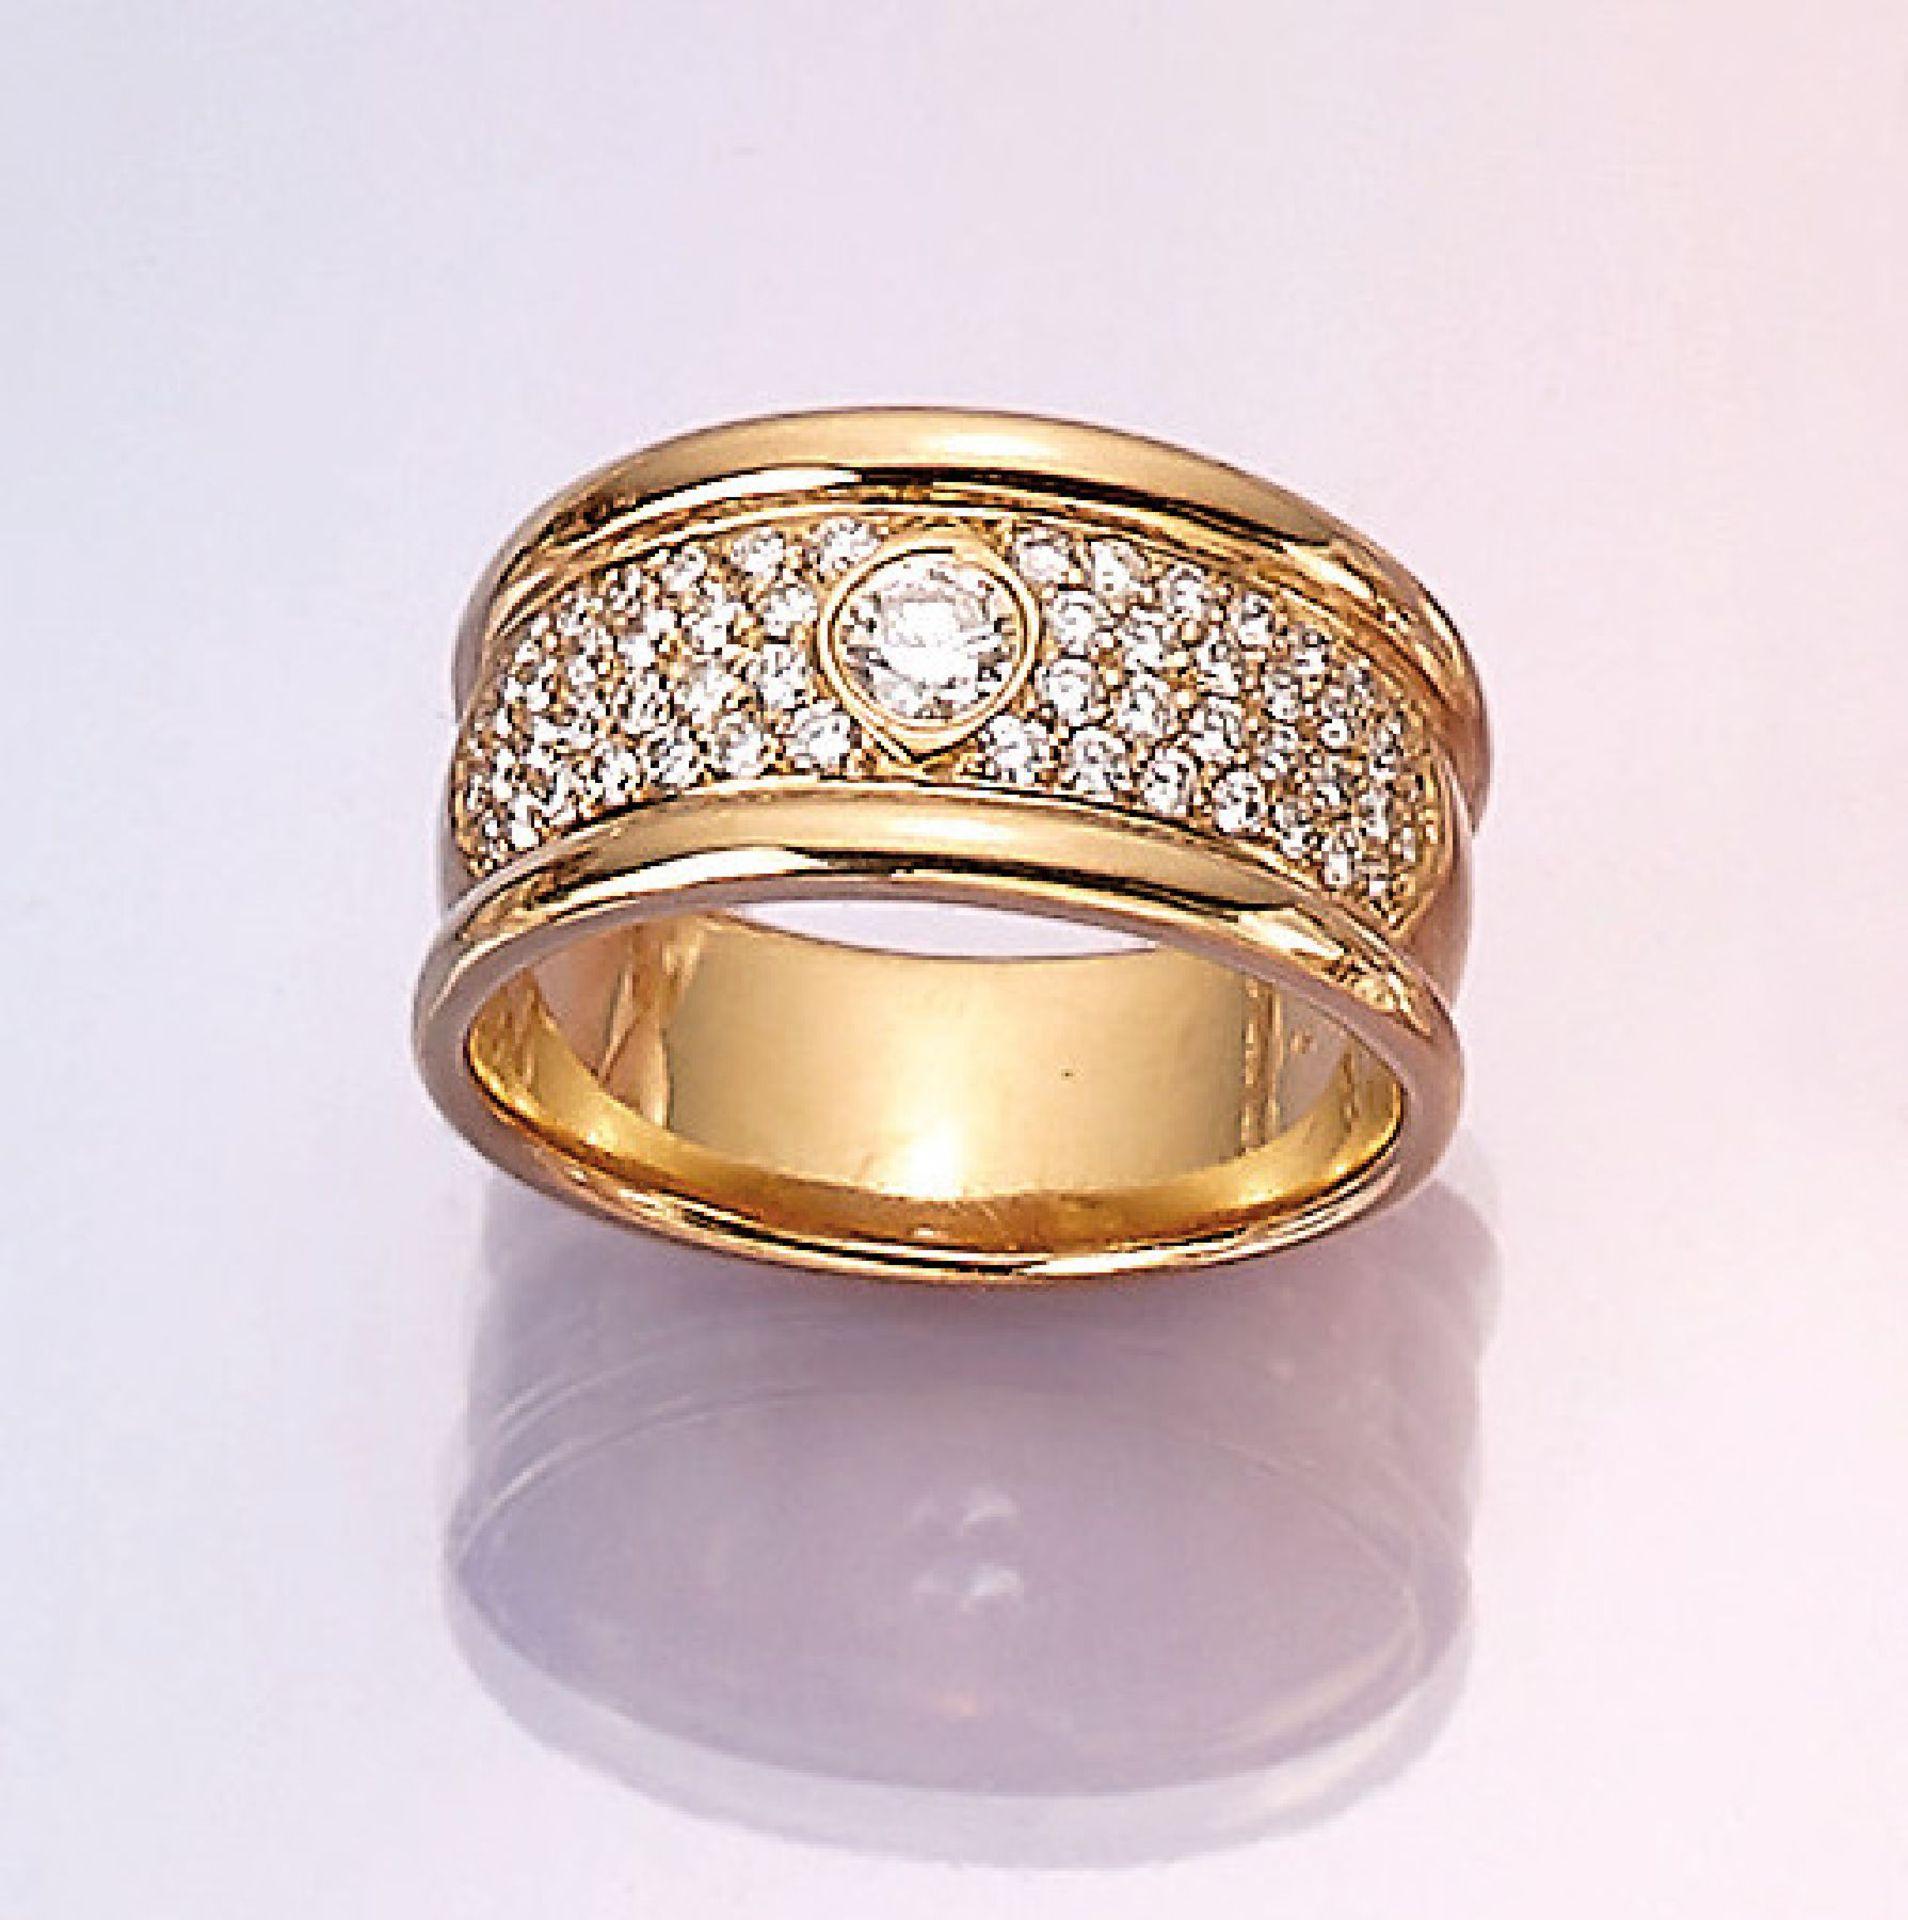 Los 31503 - 18 kt gold ring with brilliants , YG 750/000, brilliants total approx. 0.88 ct Wesselton/si, total